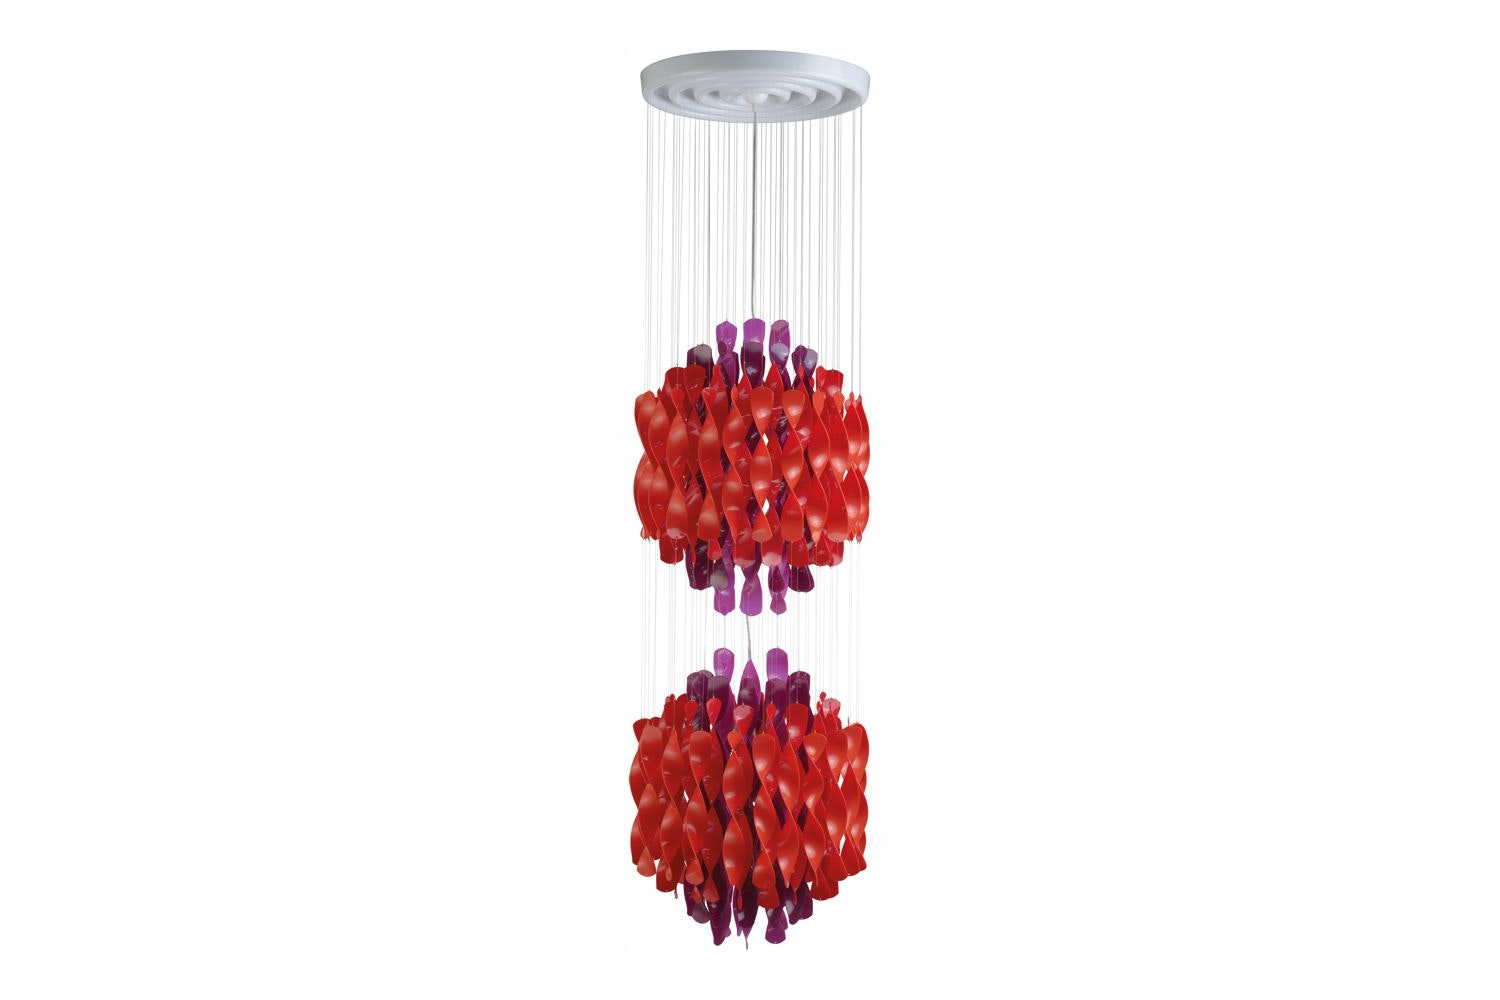 Spiral Medium Suspension Lamp in Multicolour by Verner Panton for Verpan